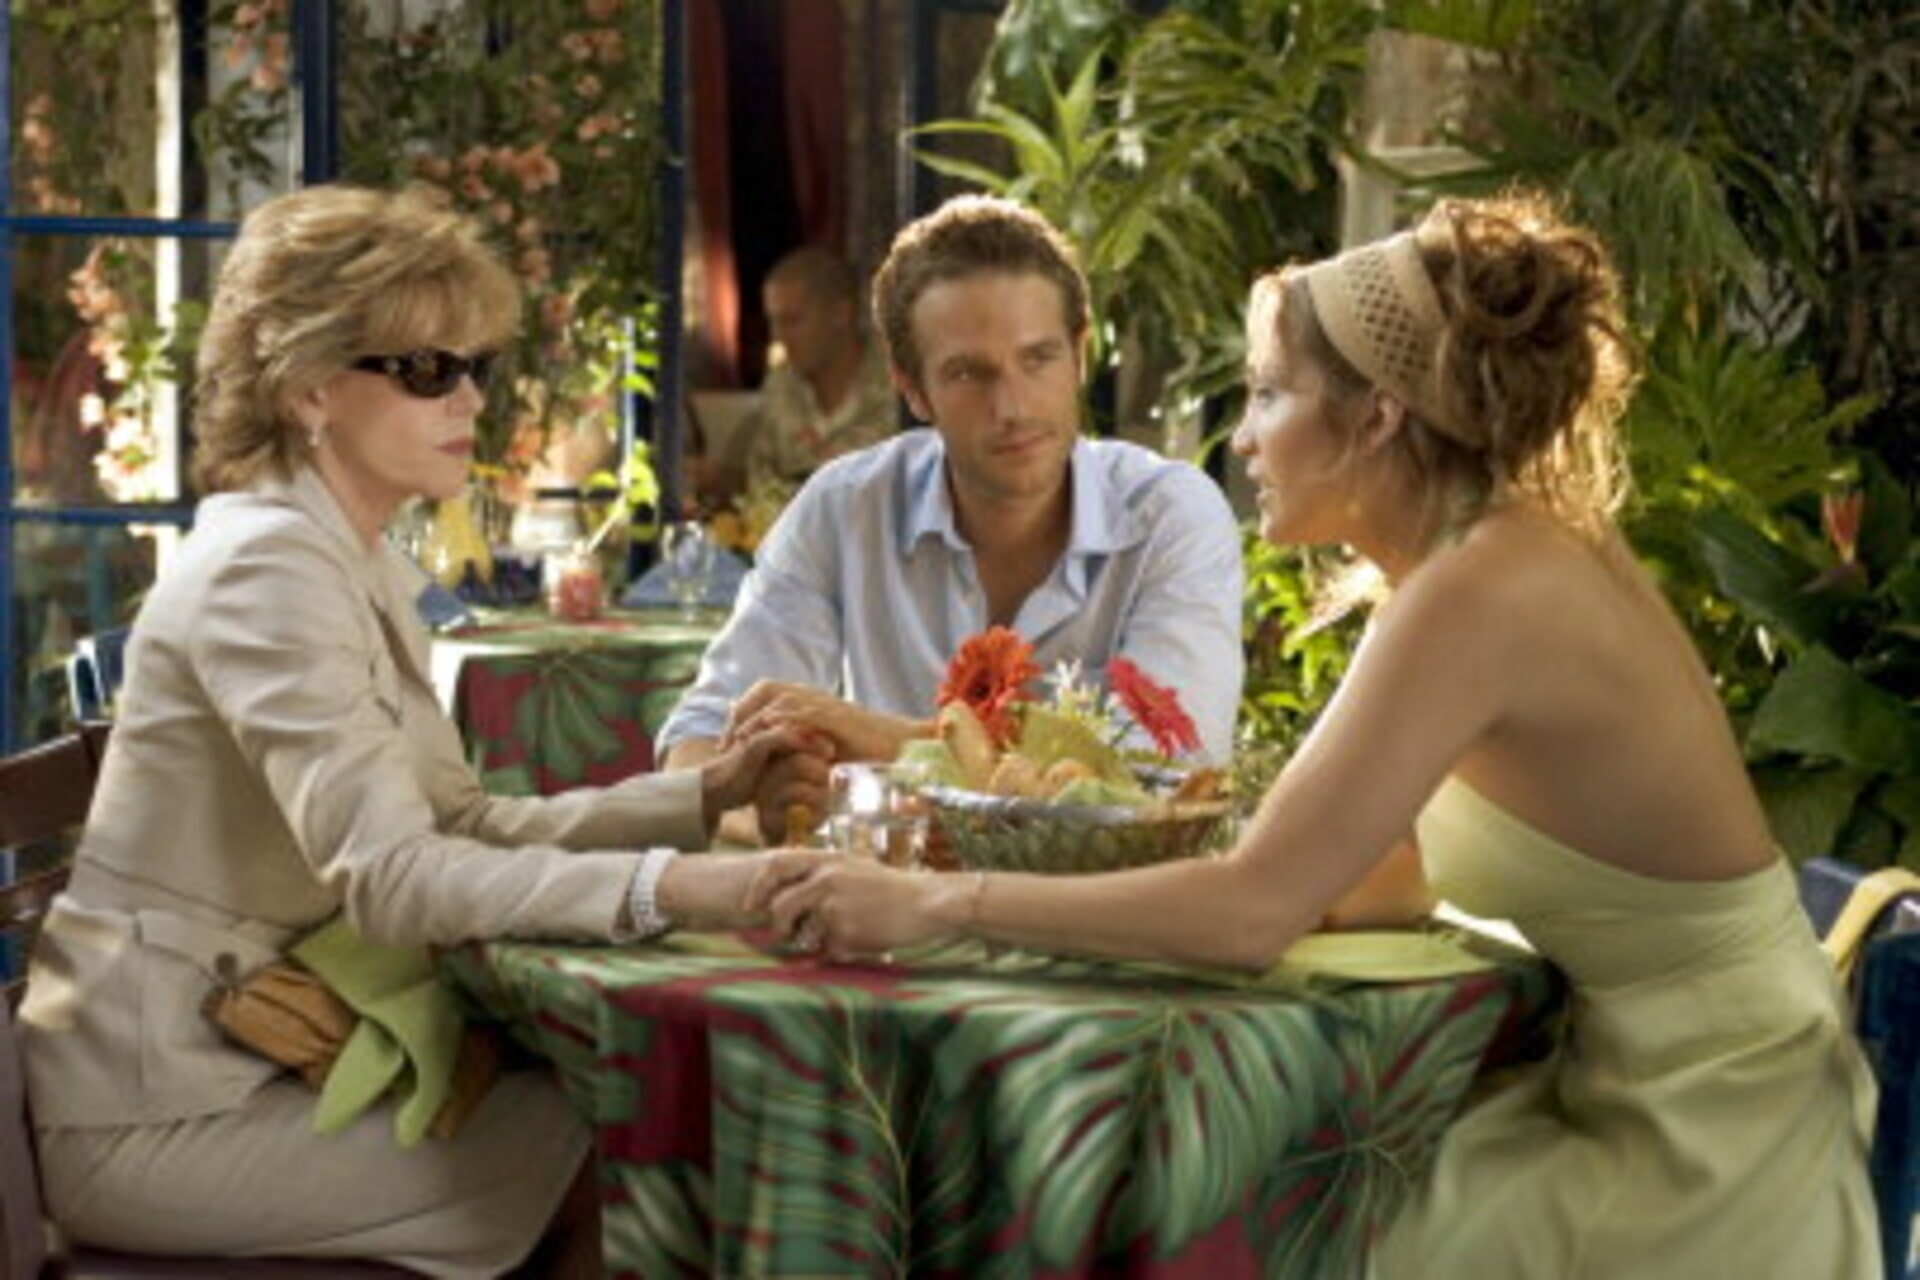 Monster-in-law - Image 13